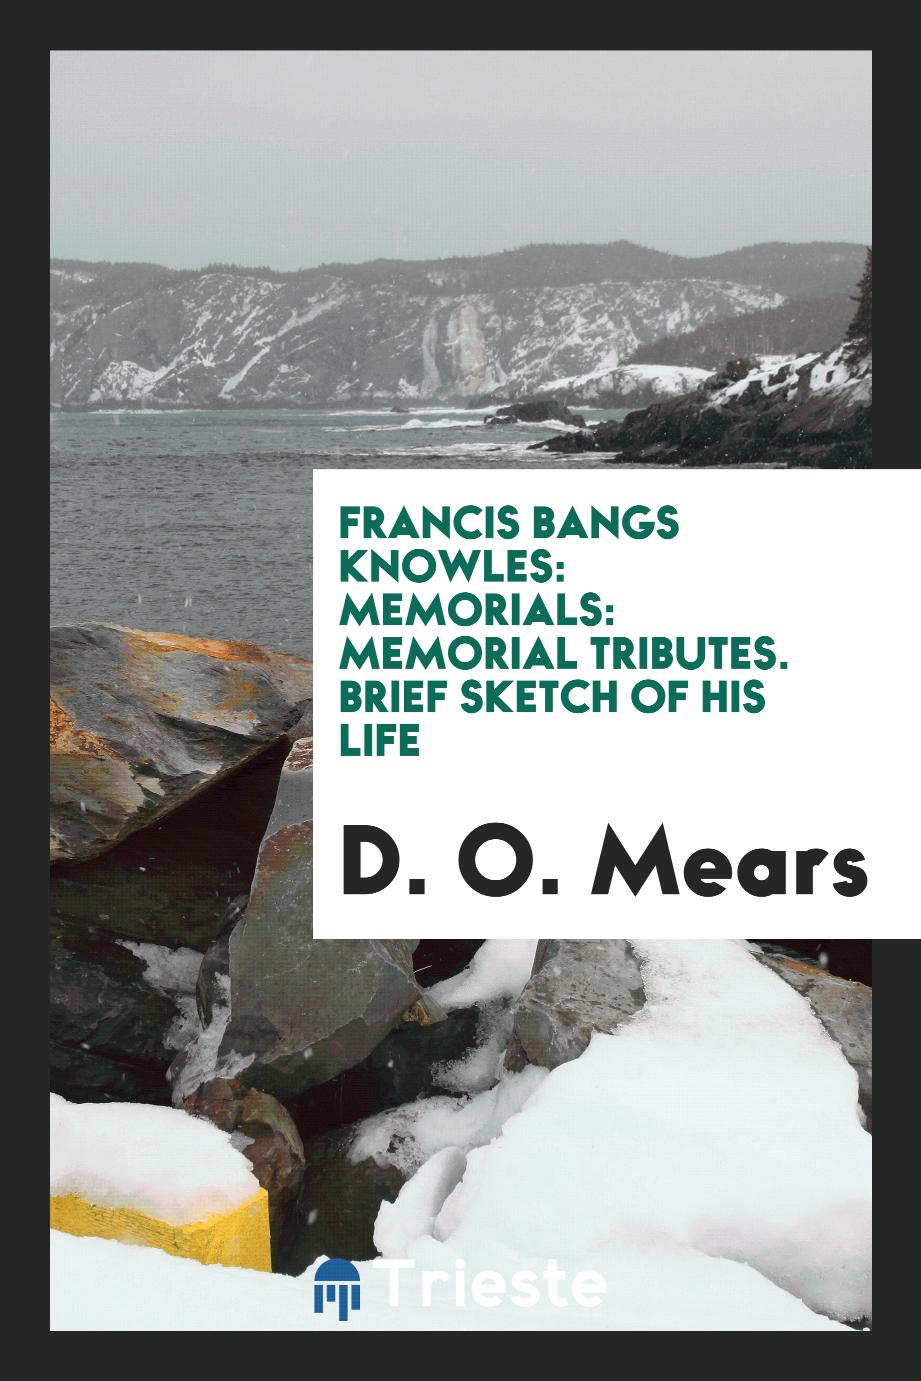 Francis Bangs Knowles: Memorials: Memorial tributes. Brief sketch of his life